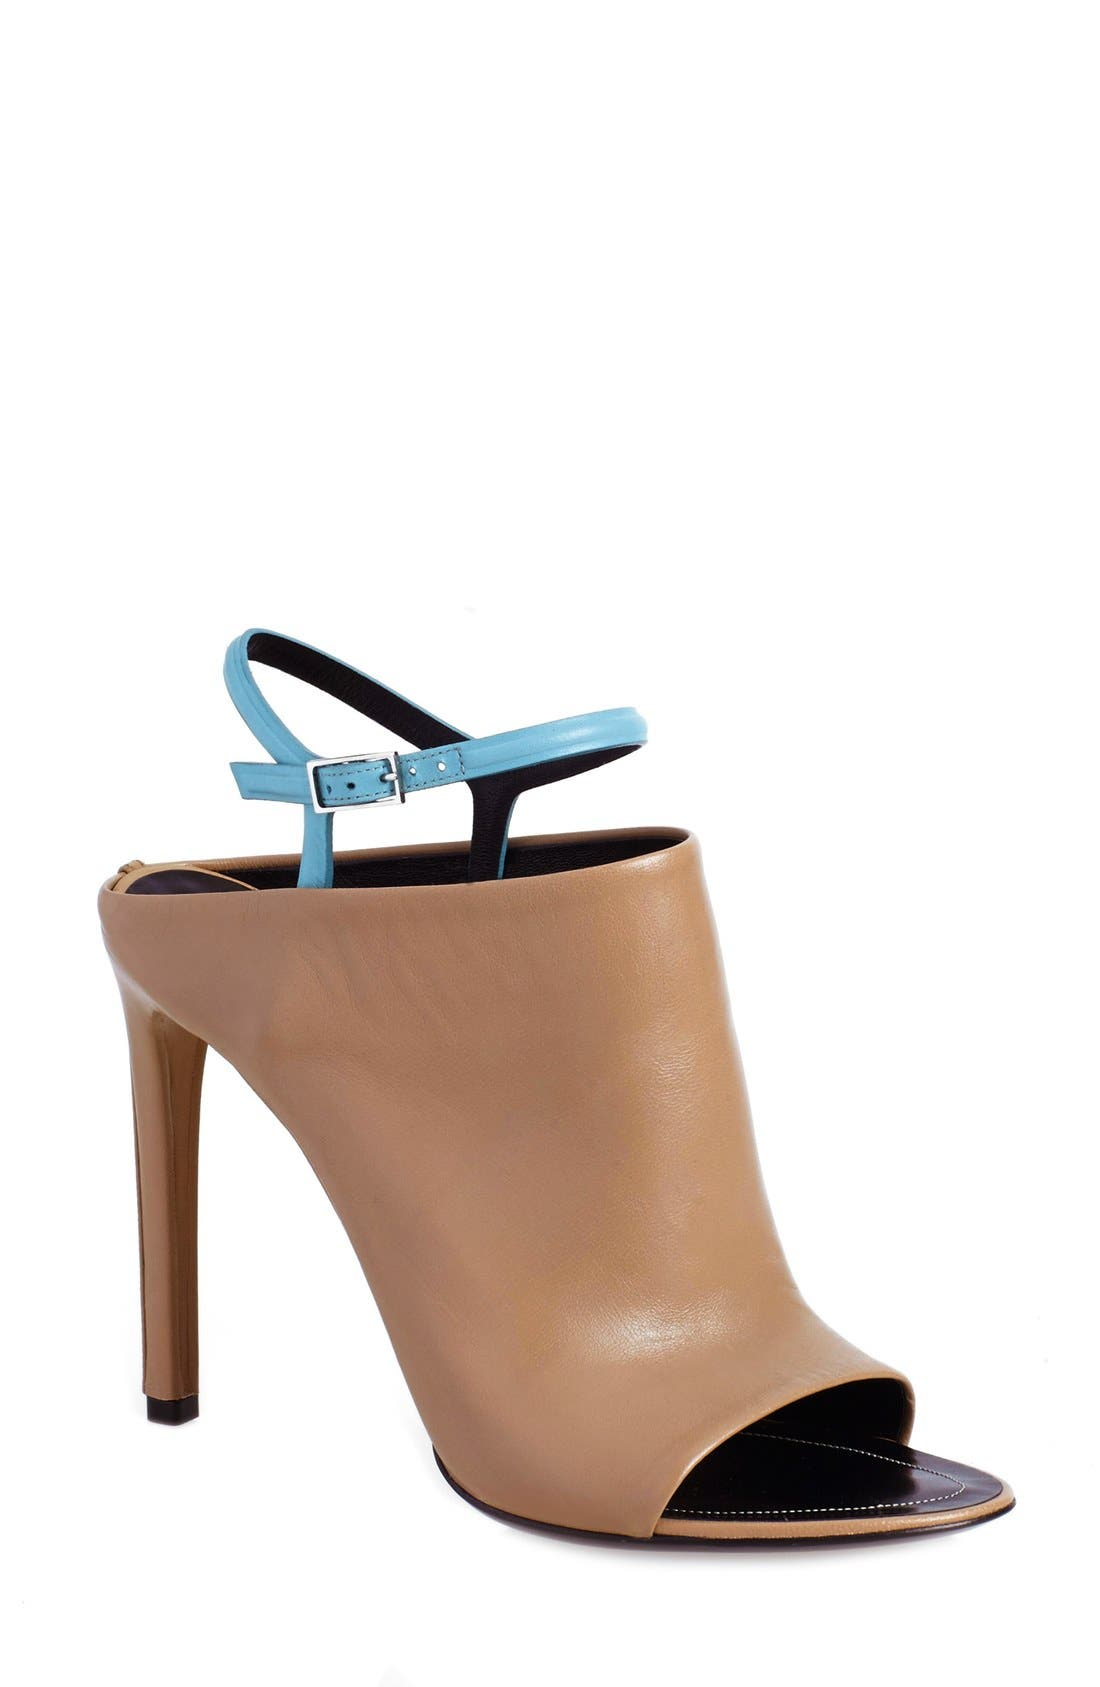 Alternate Image 1 Selected - Balenciaga 'Glove' Bicolor Leather Open Toe Sandal (Women)